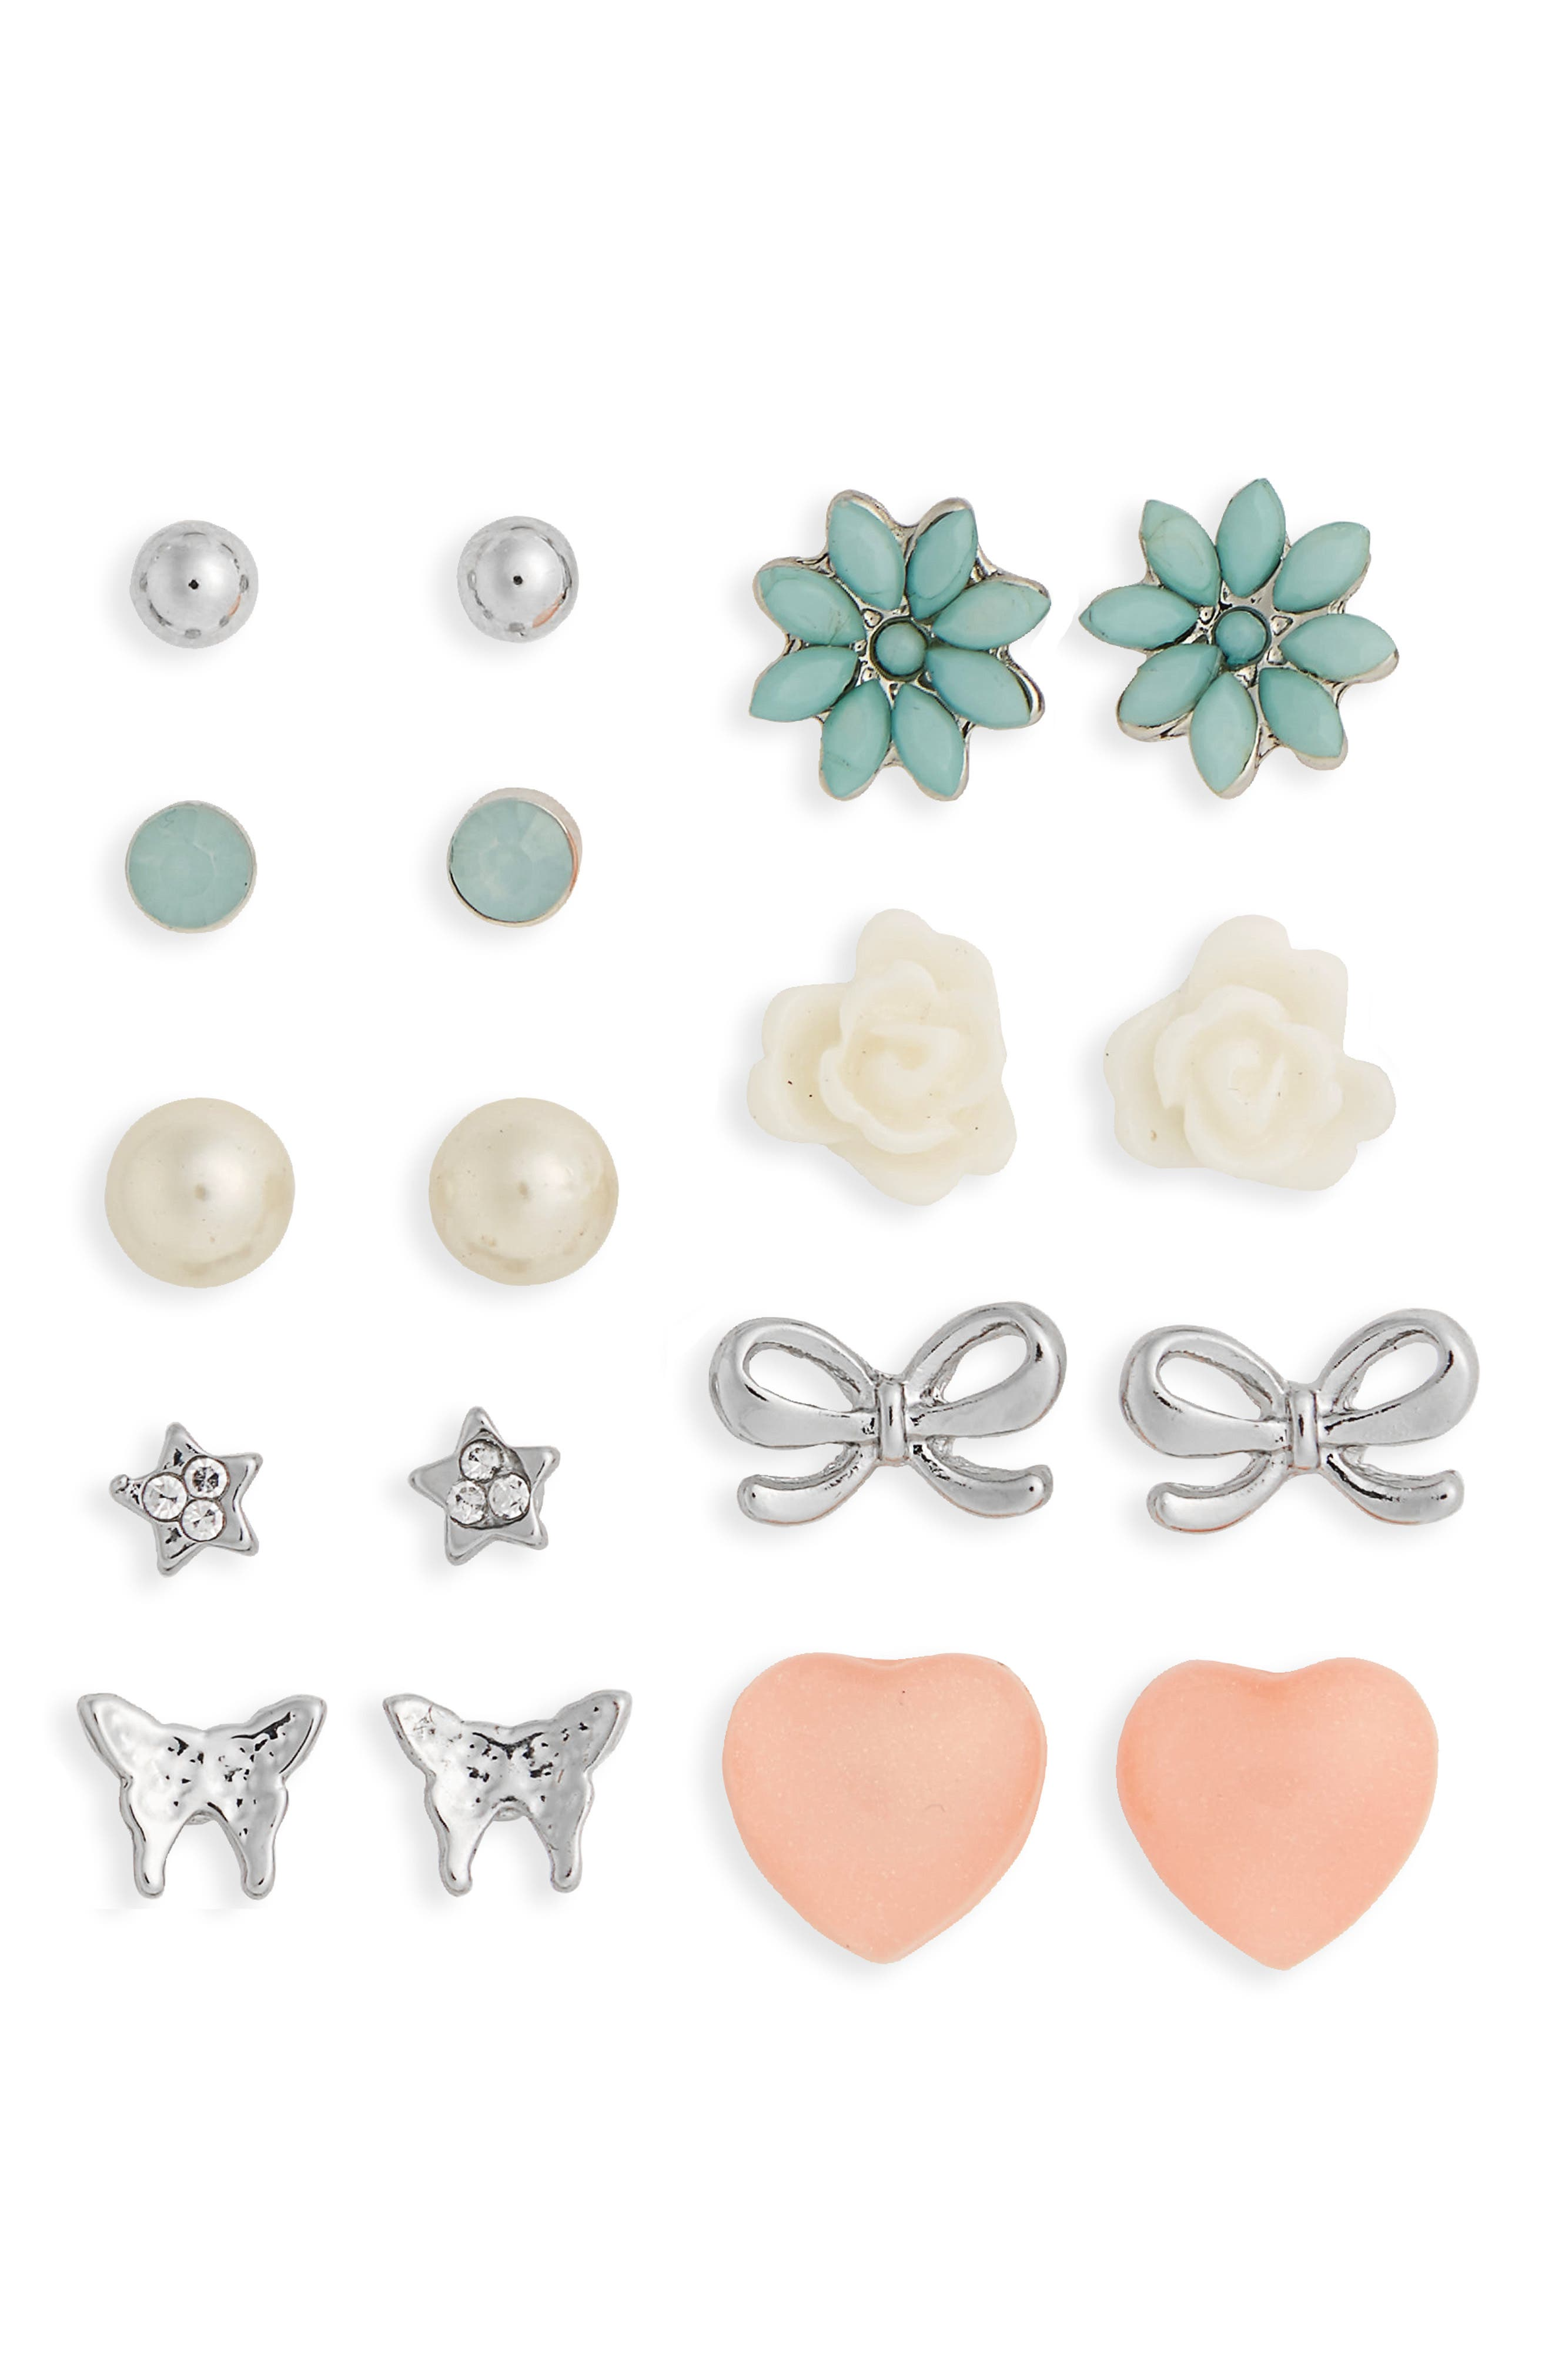 Set of 9 Butterfly Earrings,                             Main thumbnail 1, color,                             400